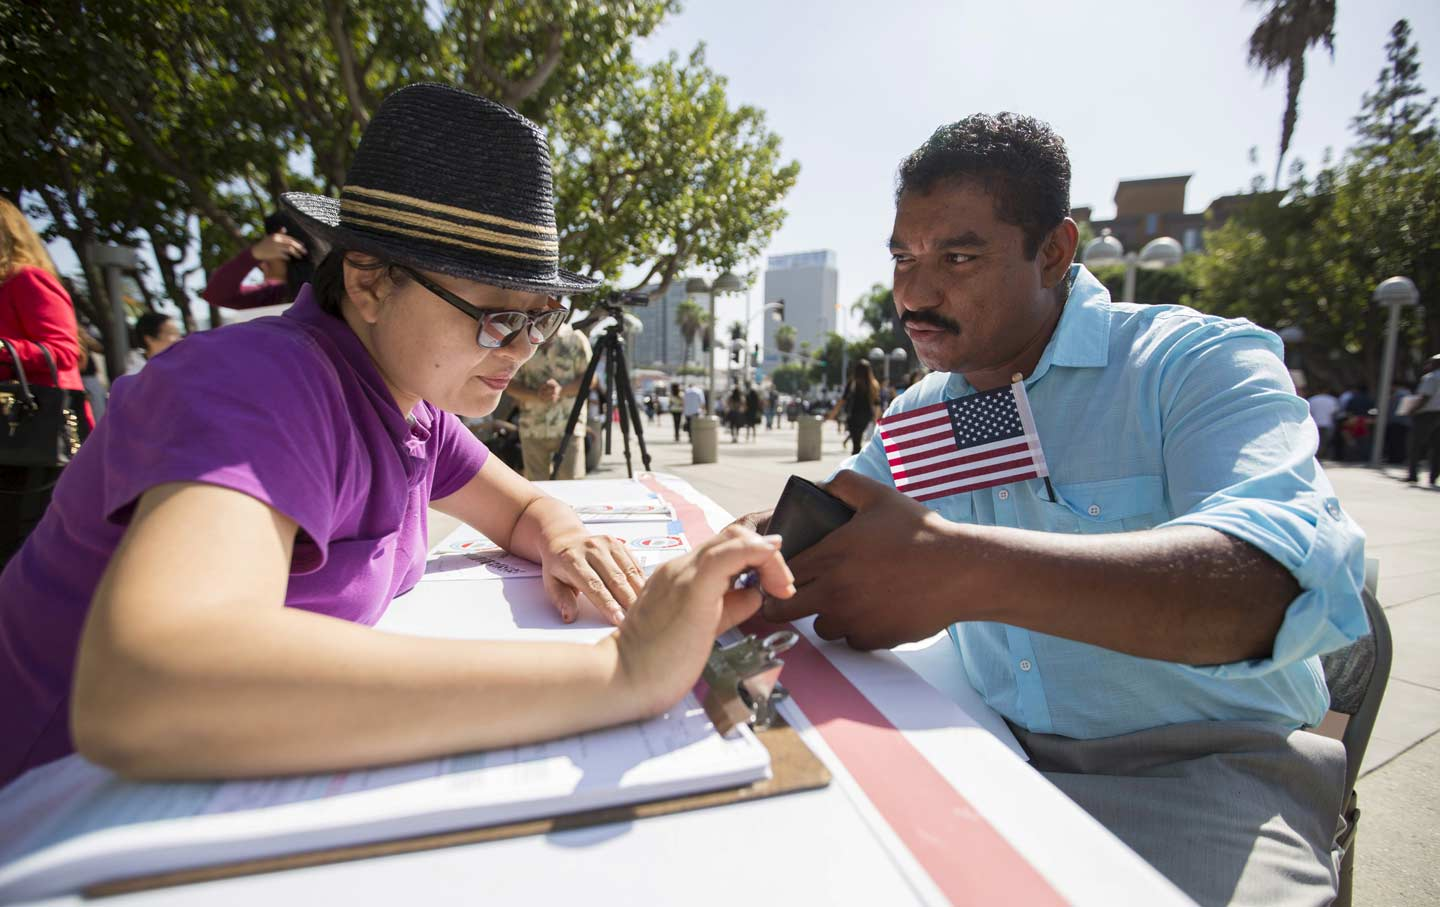 Voting_Registration_California_rtr_img1